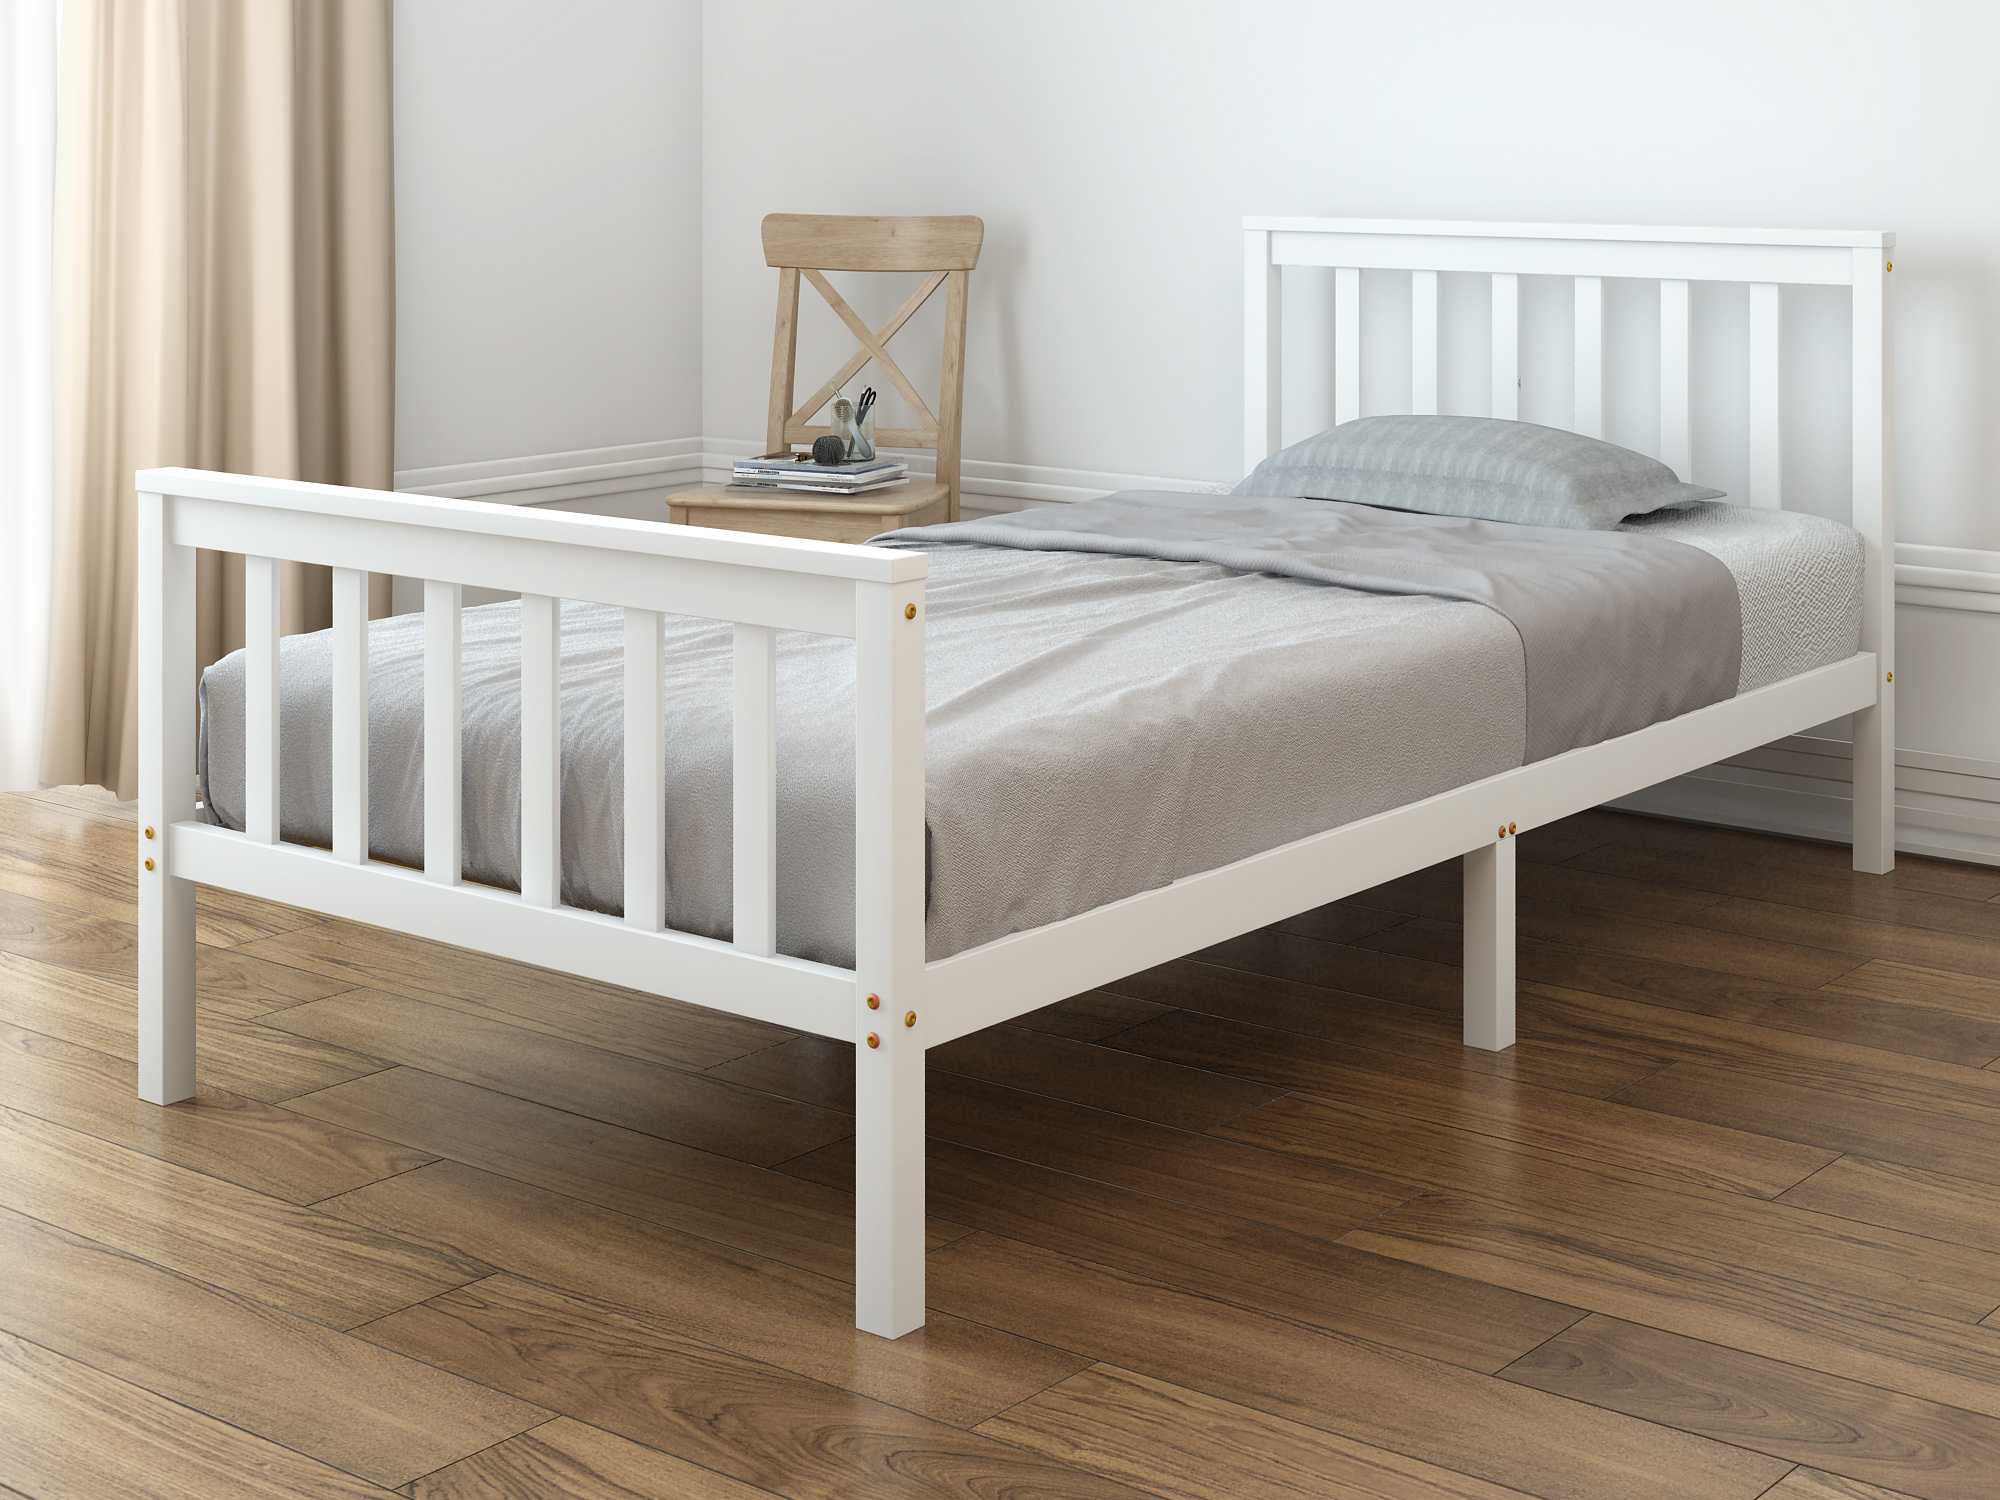 Panana Pure Solid Wood Single Bed Children's Sheet Bed 3FT Wooden Bed White / Natural For Boys And Girls Nordic Teenagers